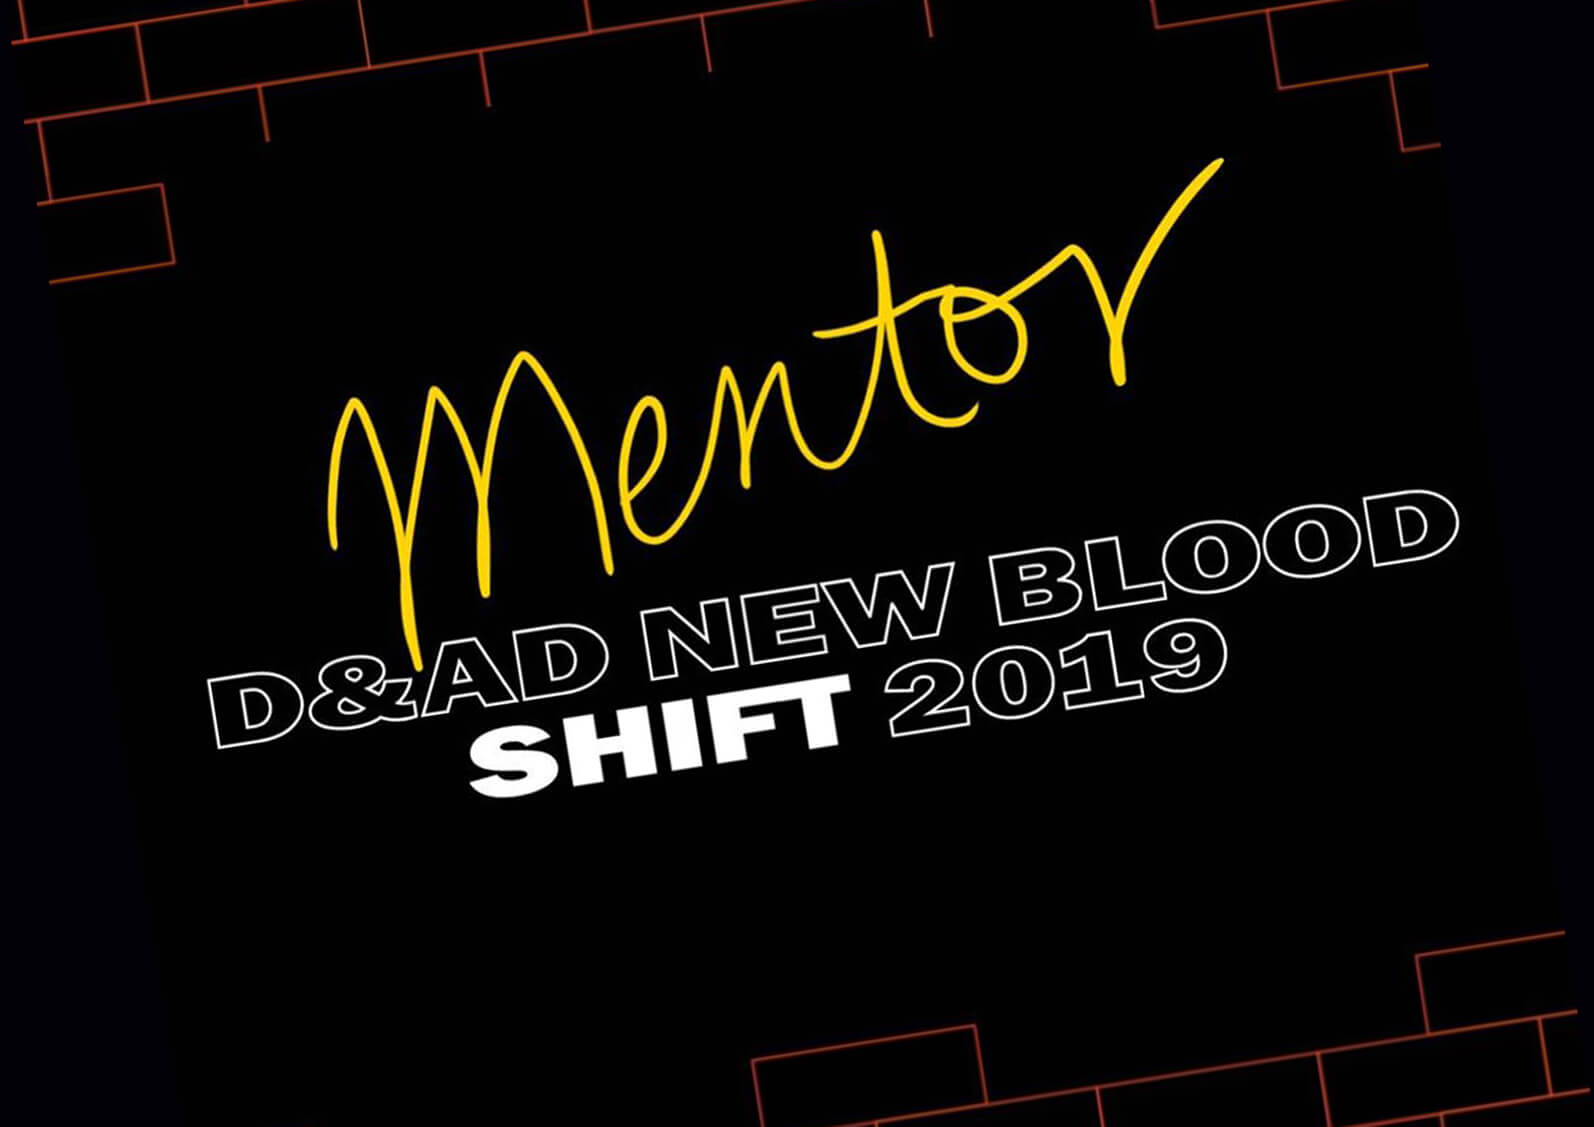 Visual announcement of becoming a mentor for D&AD